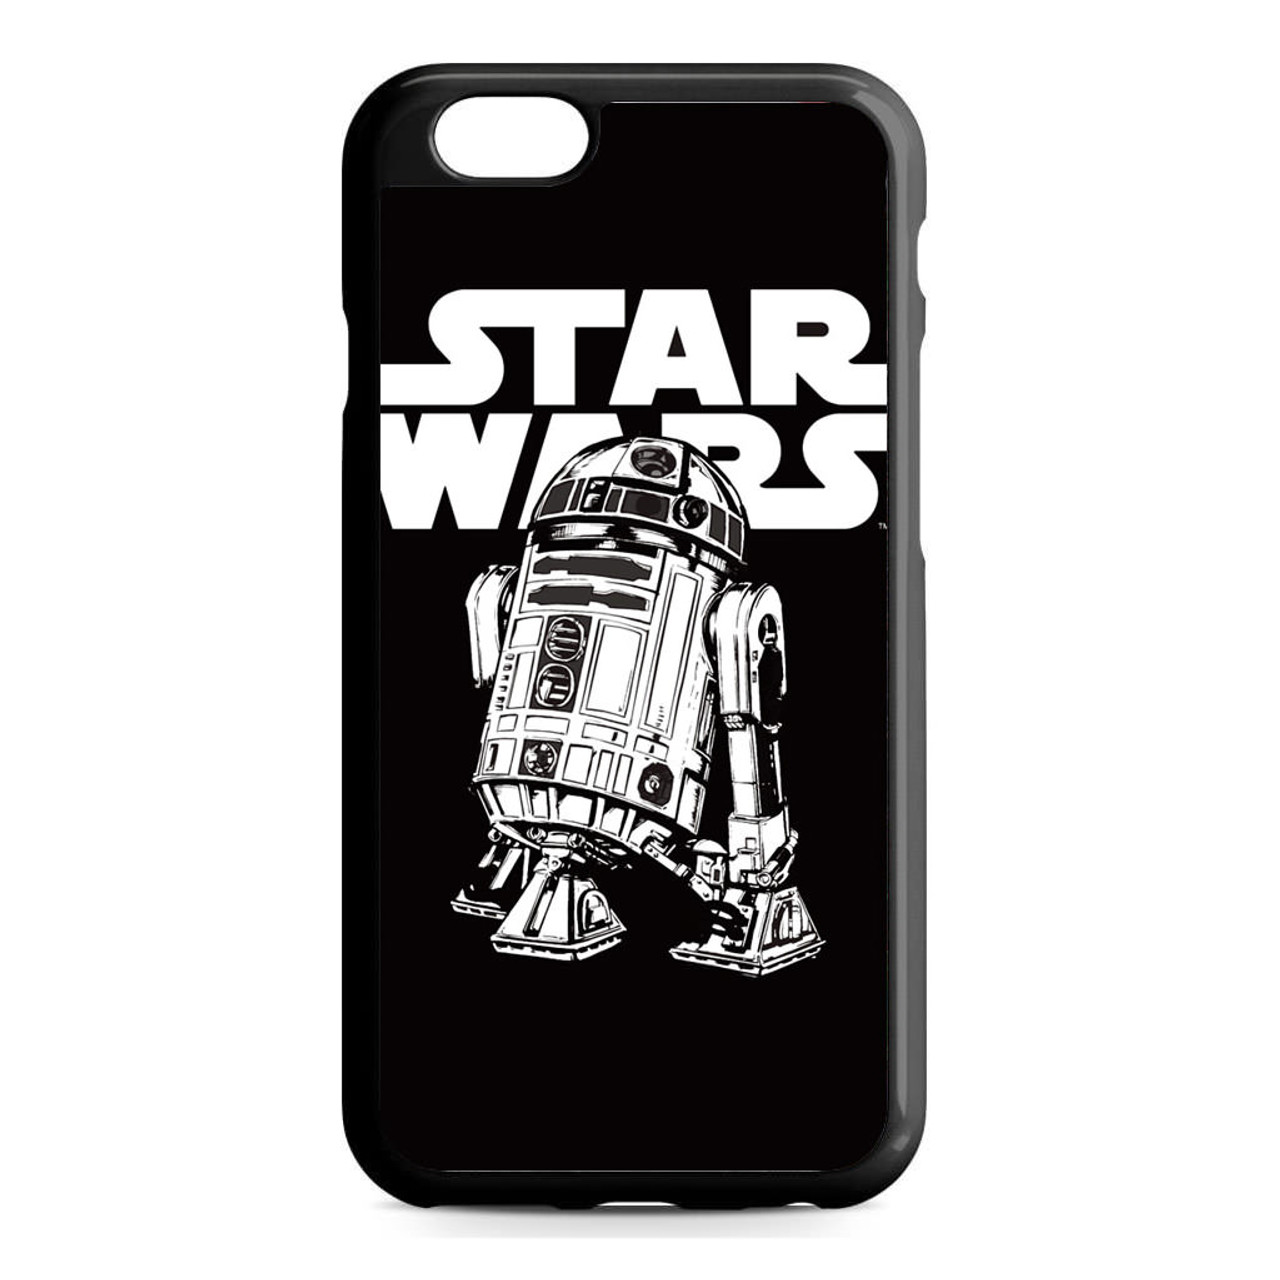 r2d2 iphone 6 case